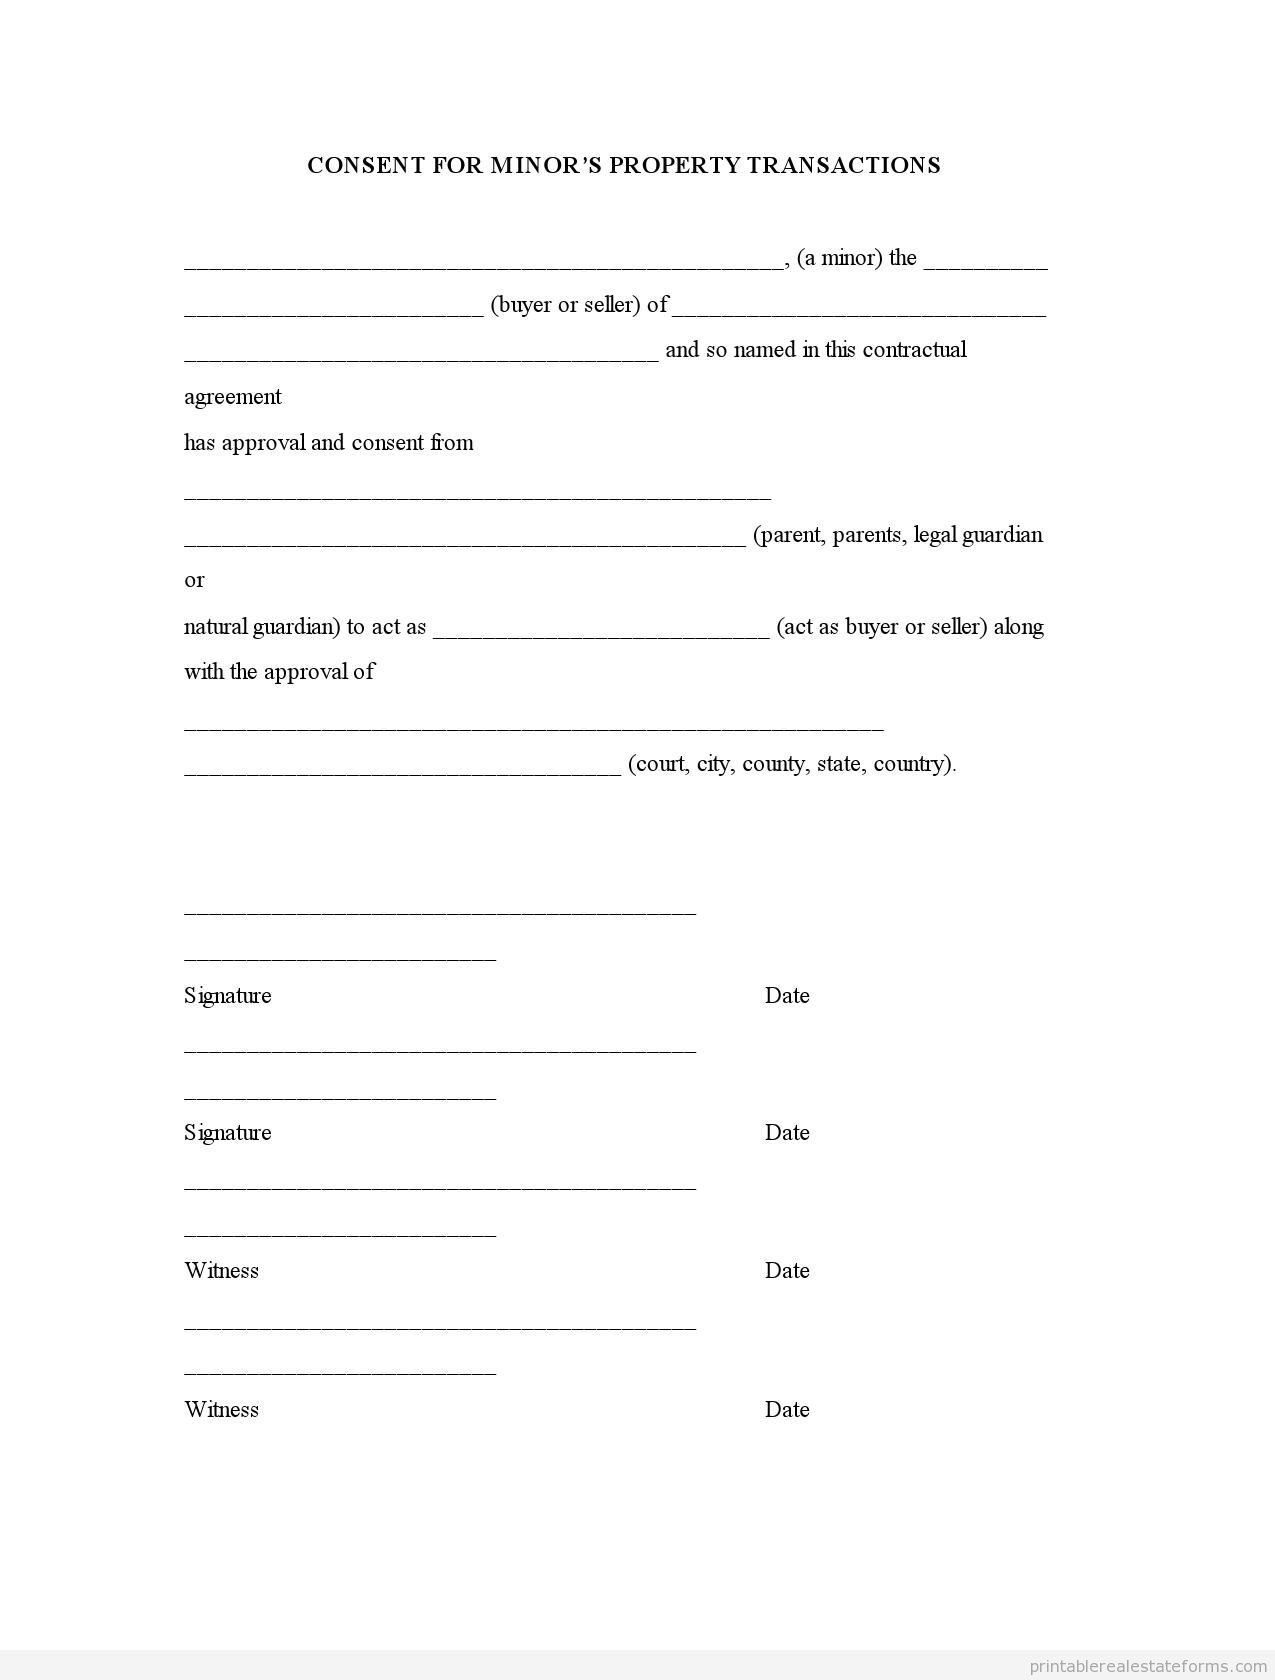 Sample Printable Consent For Minor Property Transactions Form